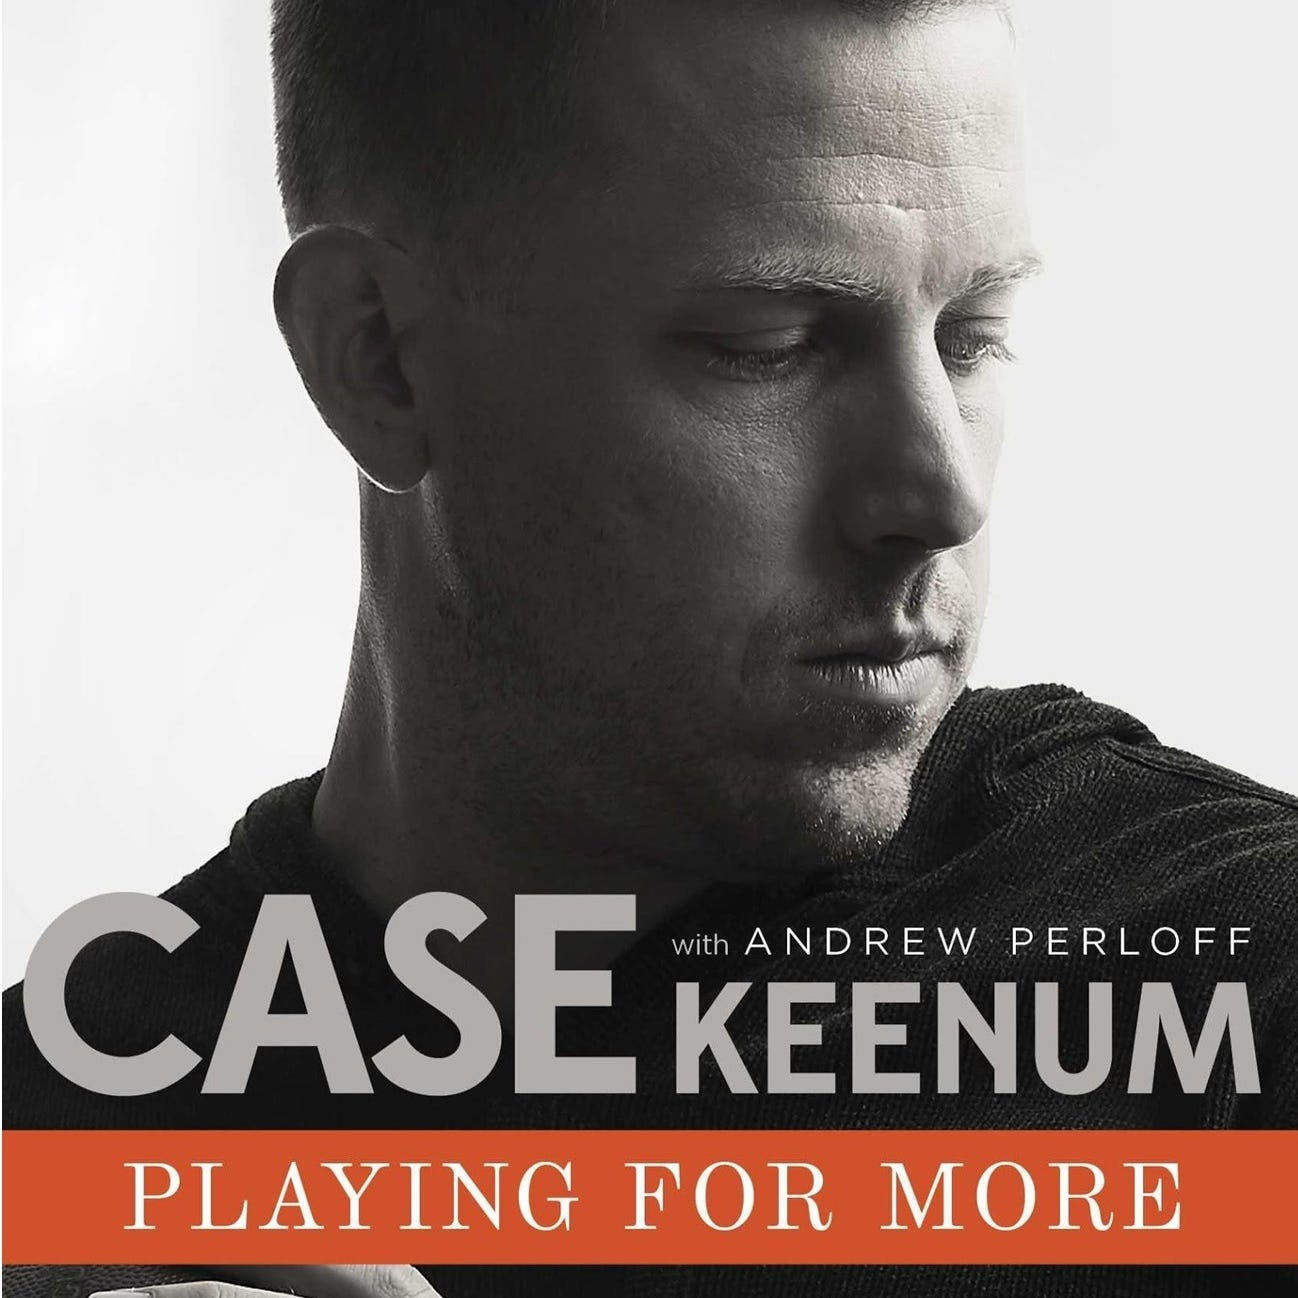 Texas Reads: Case Keenum explains his priorities in life